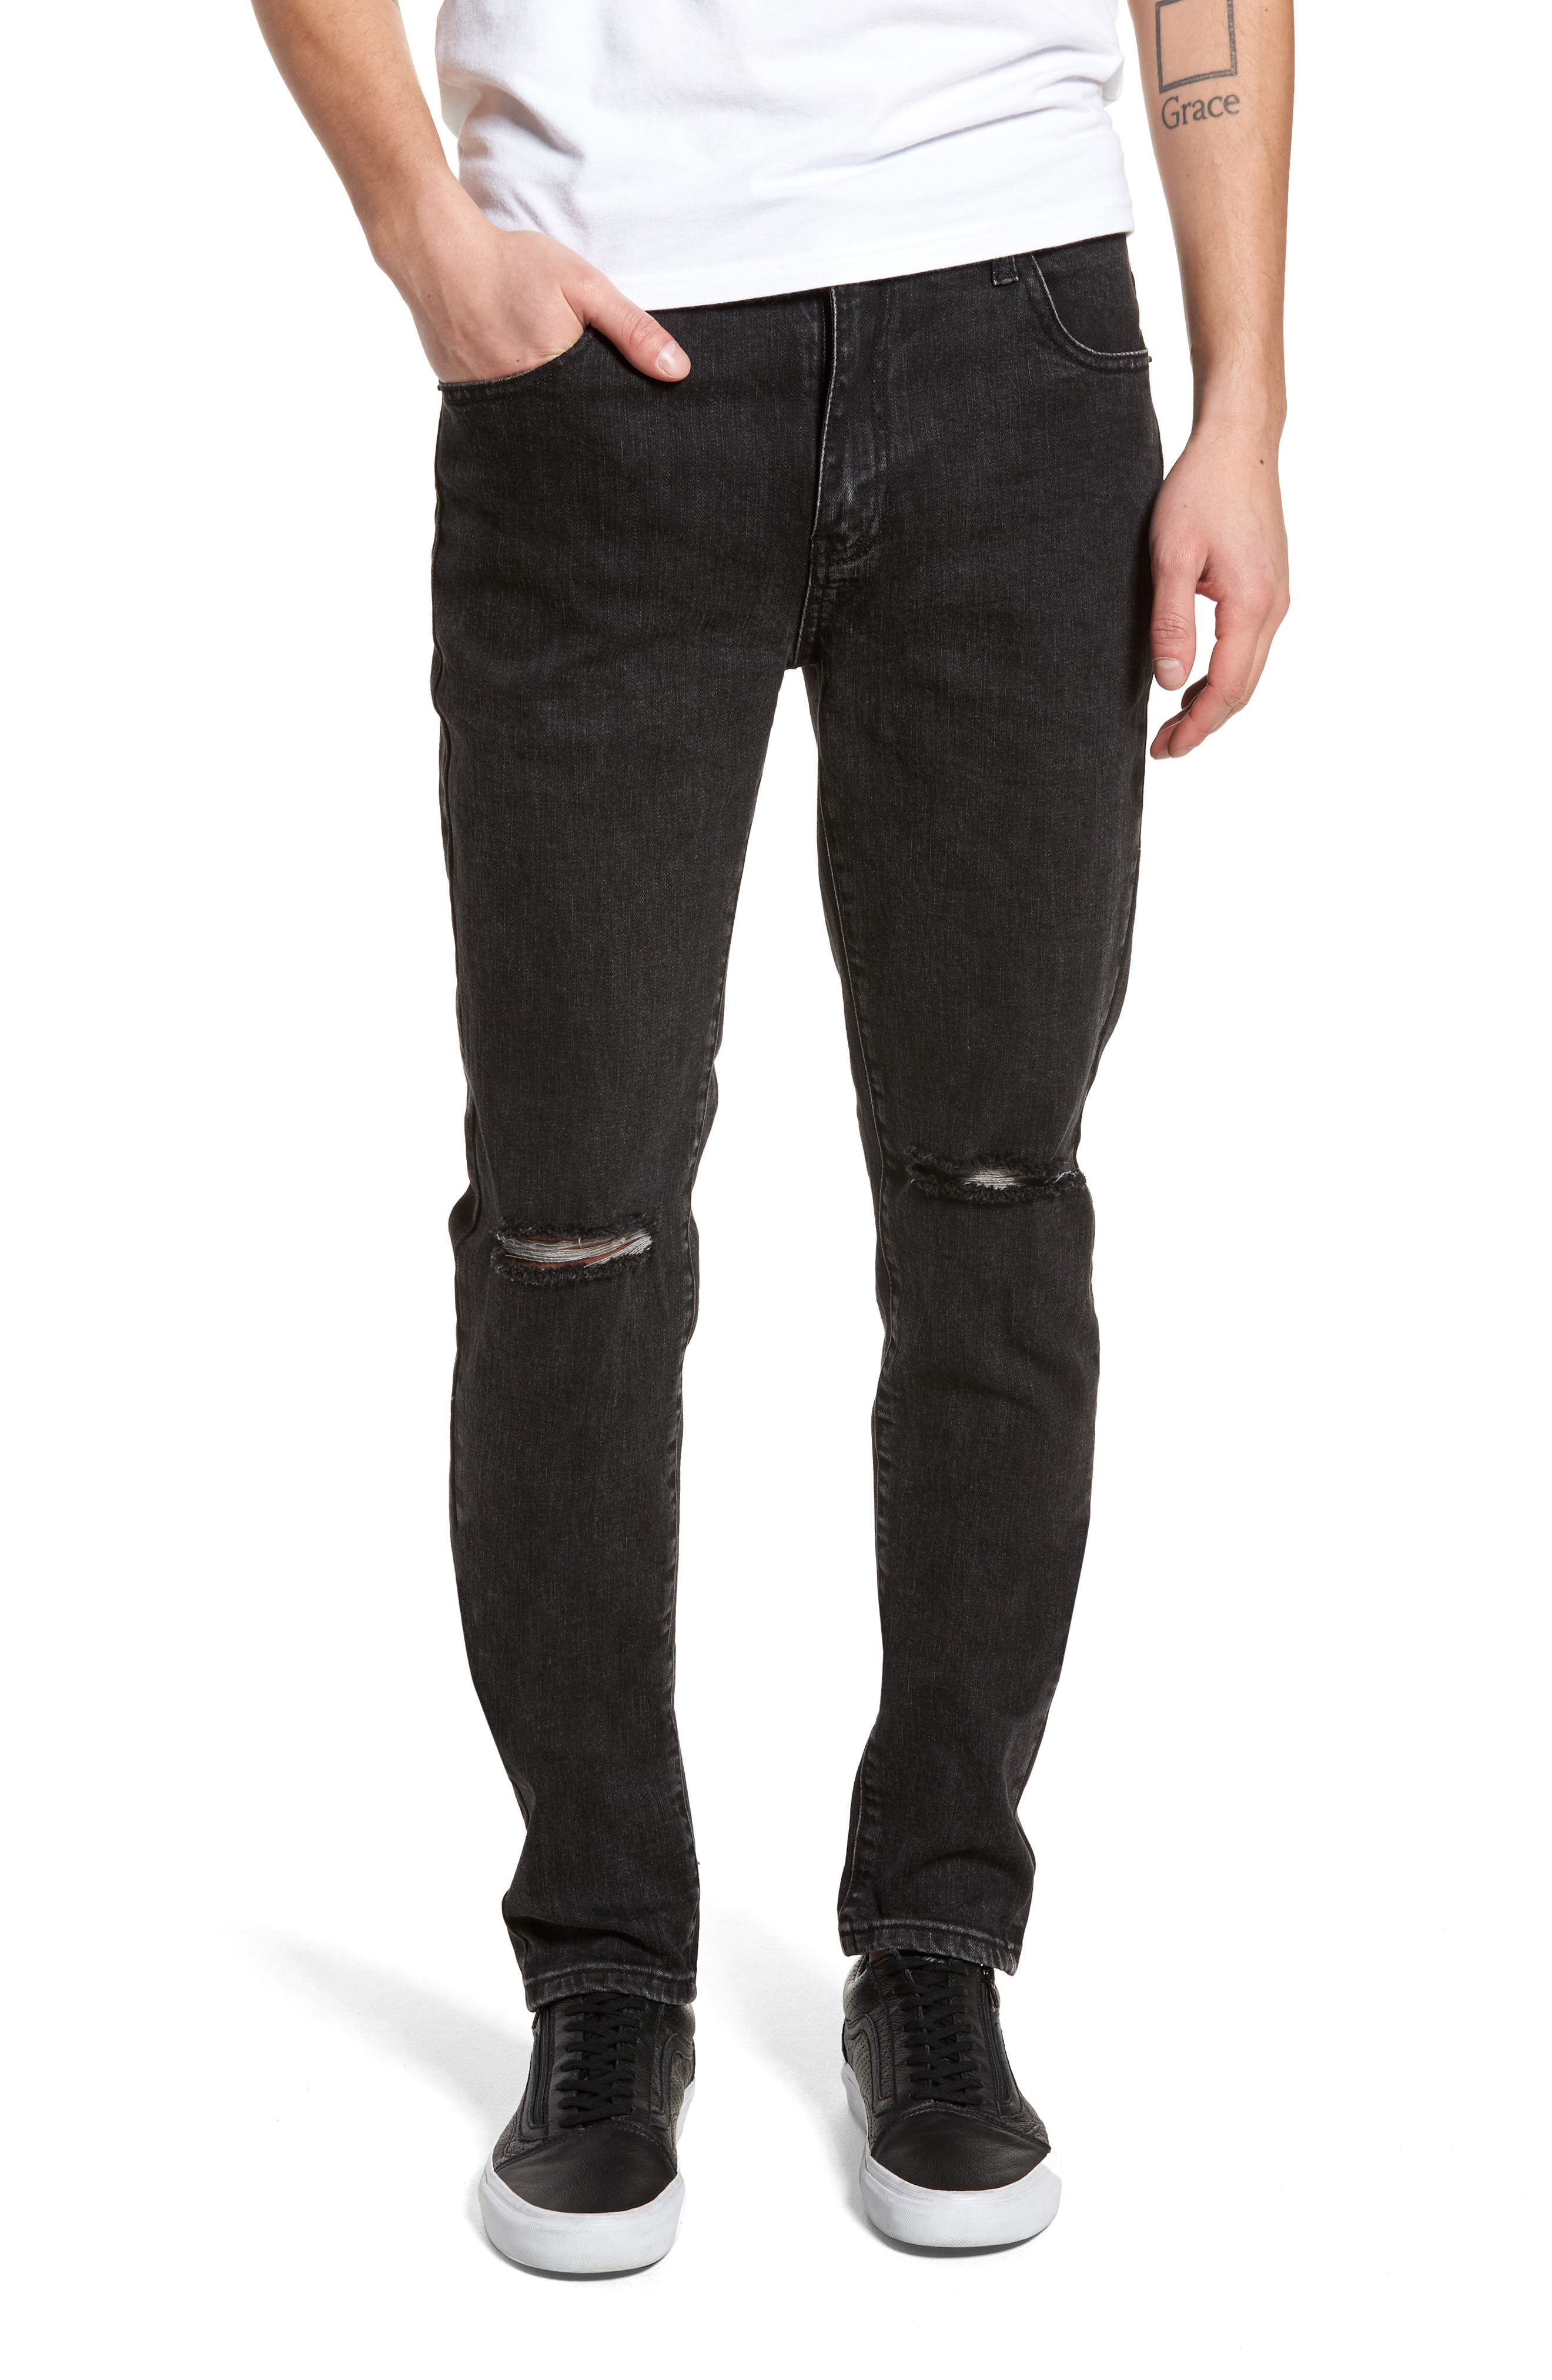 Baxter Ripped Jeans,                         Main,                         color, 001